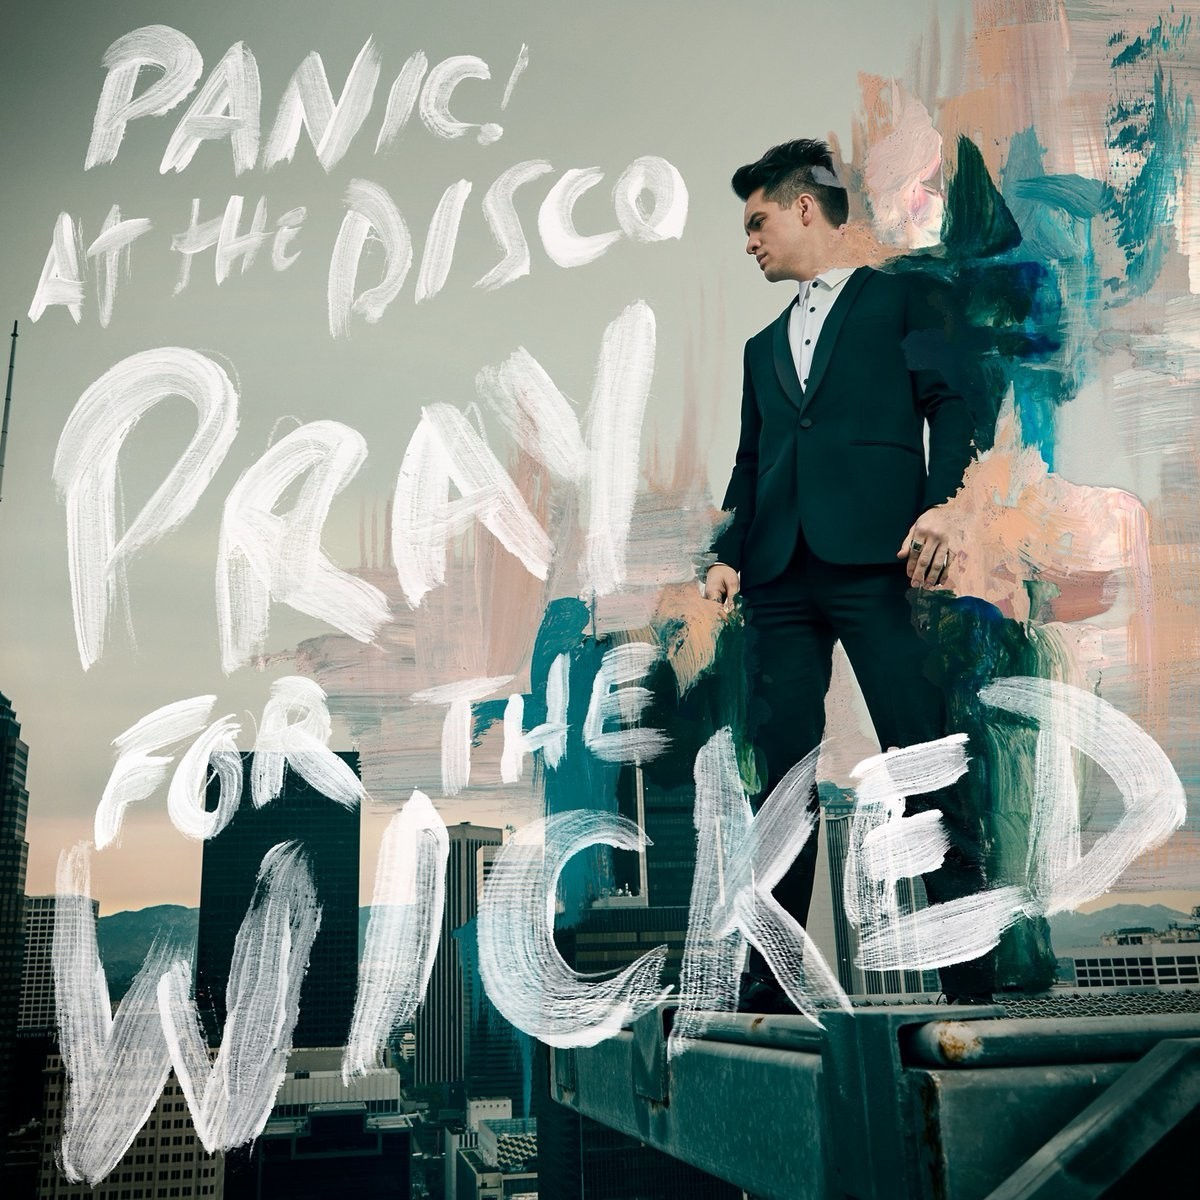 Panic! At The Disco coming to Amalie Arena in Tampa